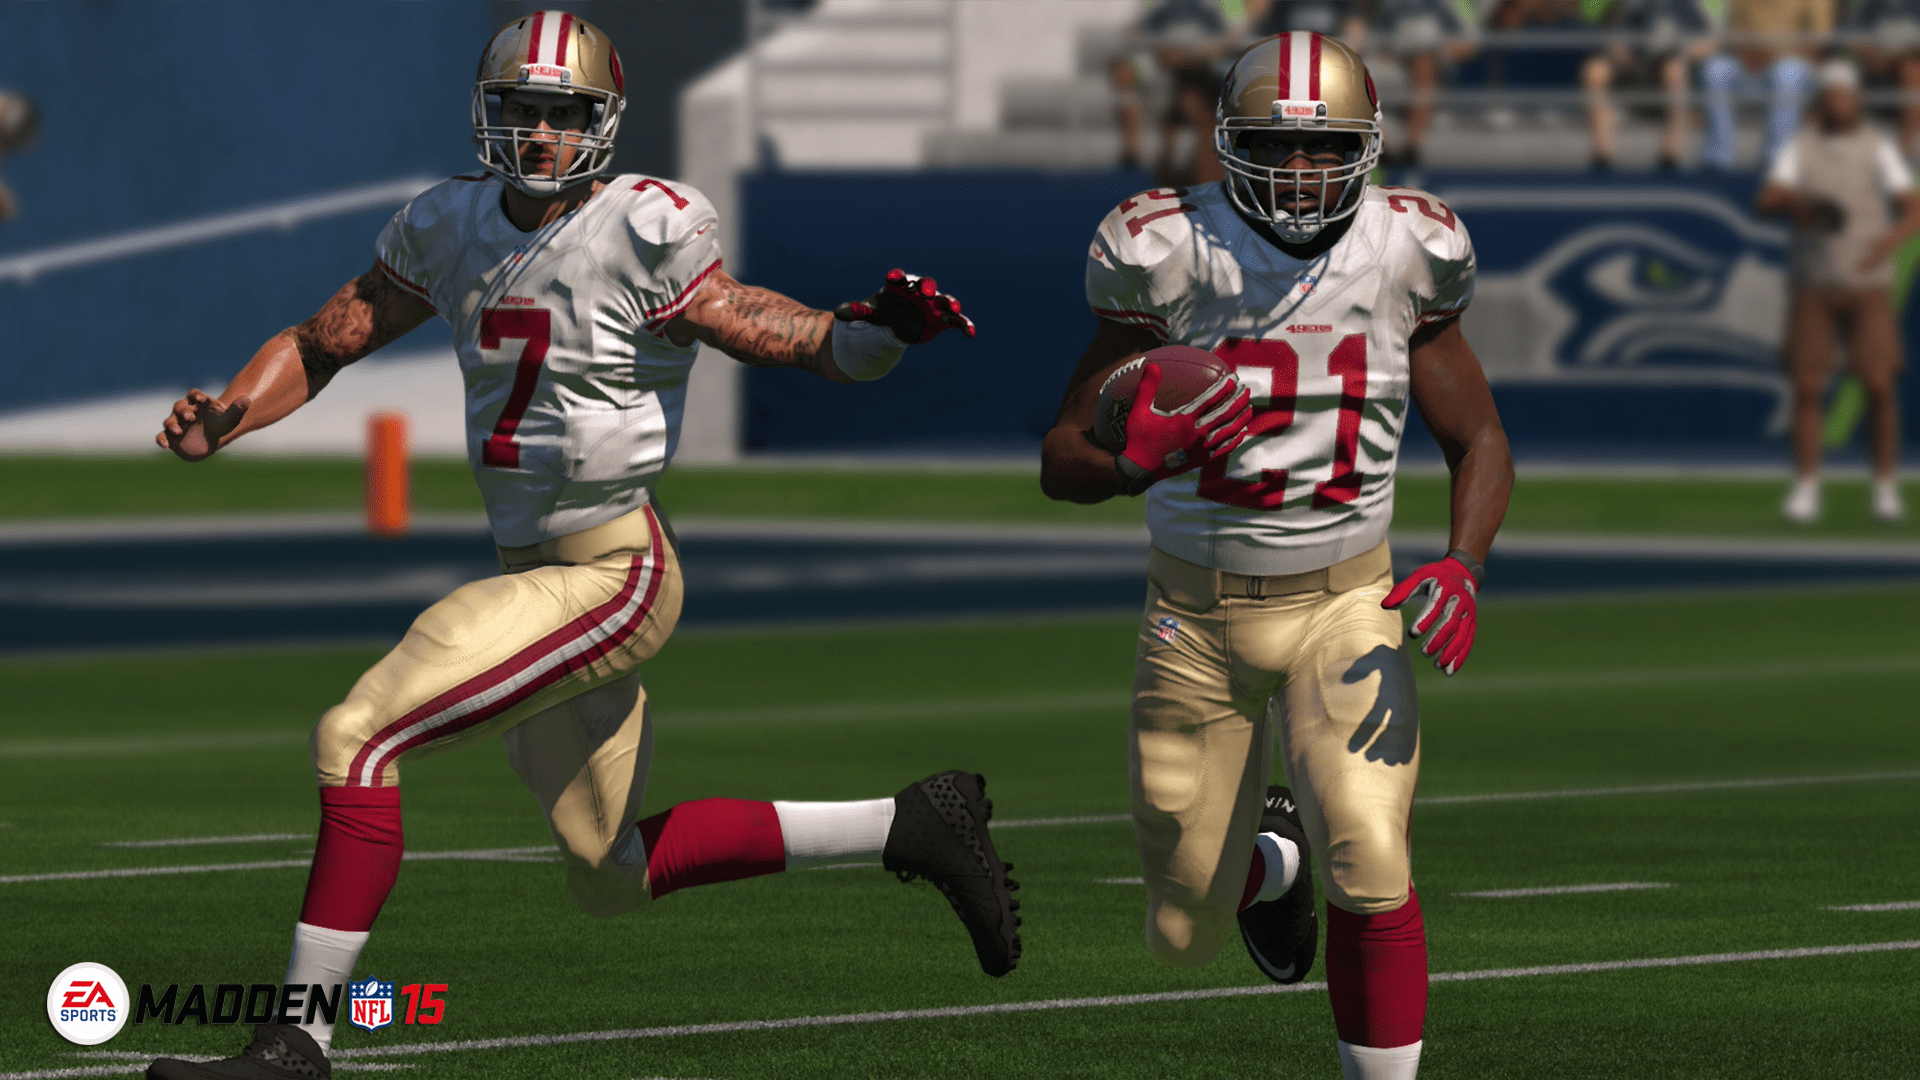 Madden 15 Screenshots Pictures Wallpapers Xbox One IGN